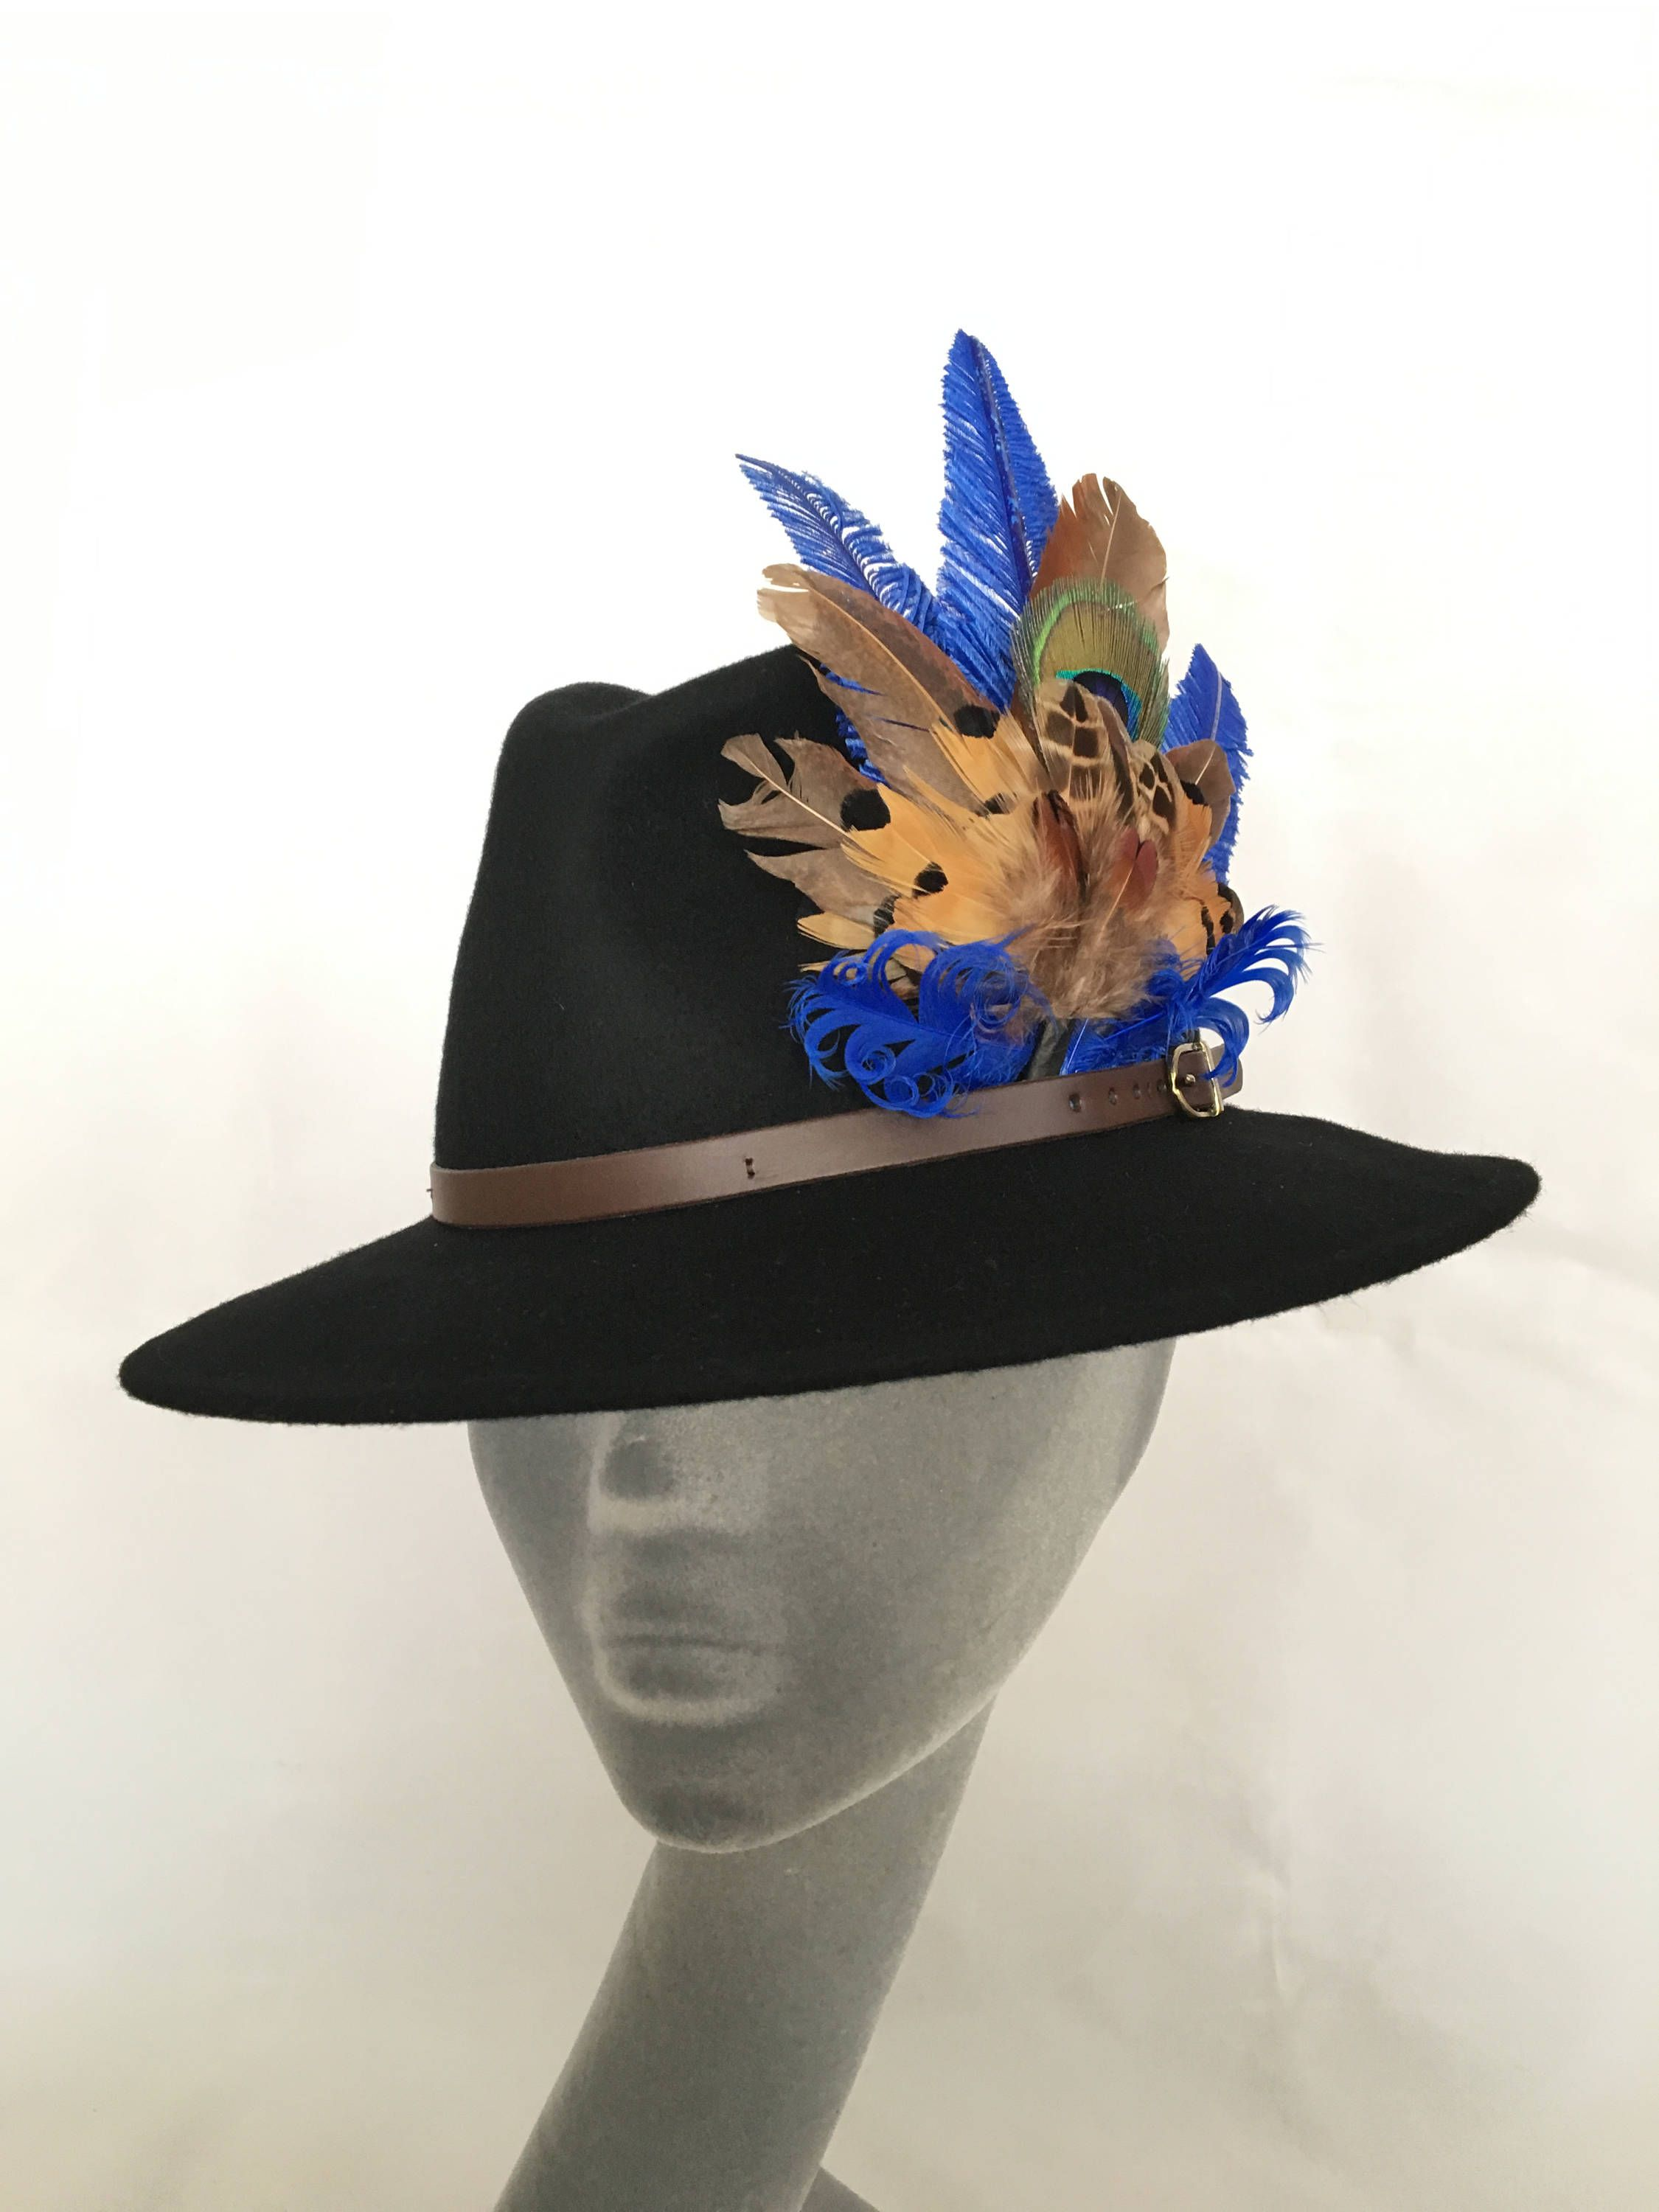 09784b9fcde73 ARABELLA Ladies Black Wool Felt Trilby with Pheasant Feather Trim - Perfect  for Cheltenham Races